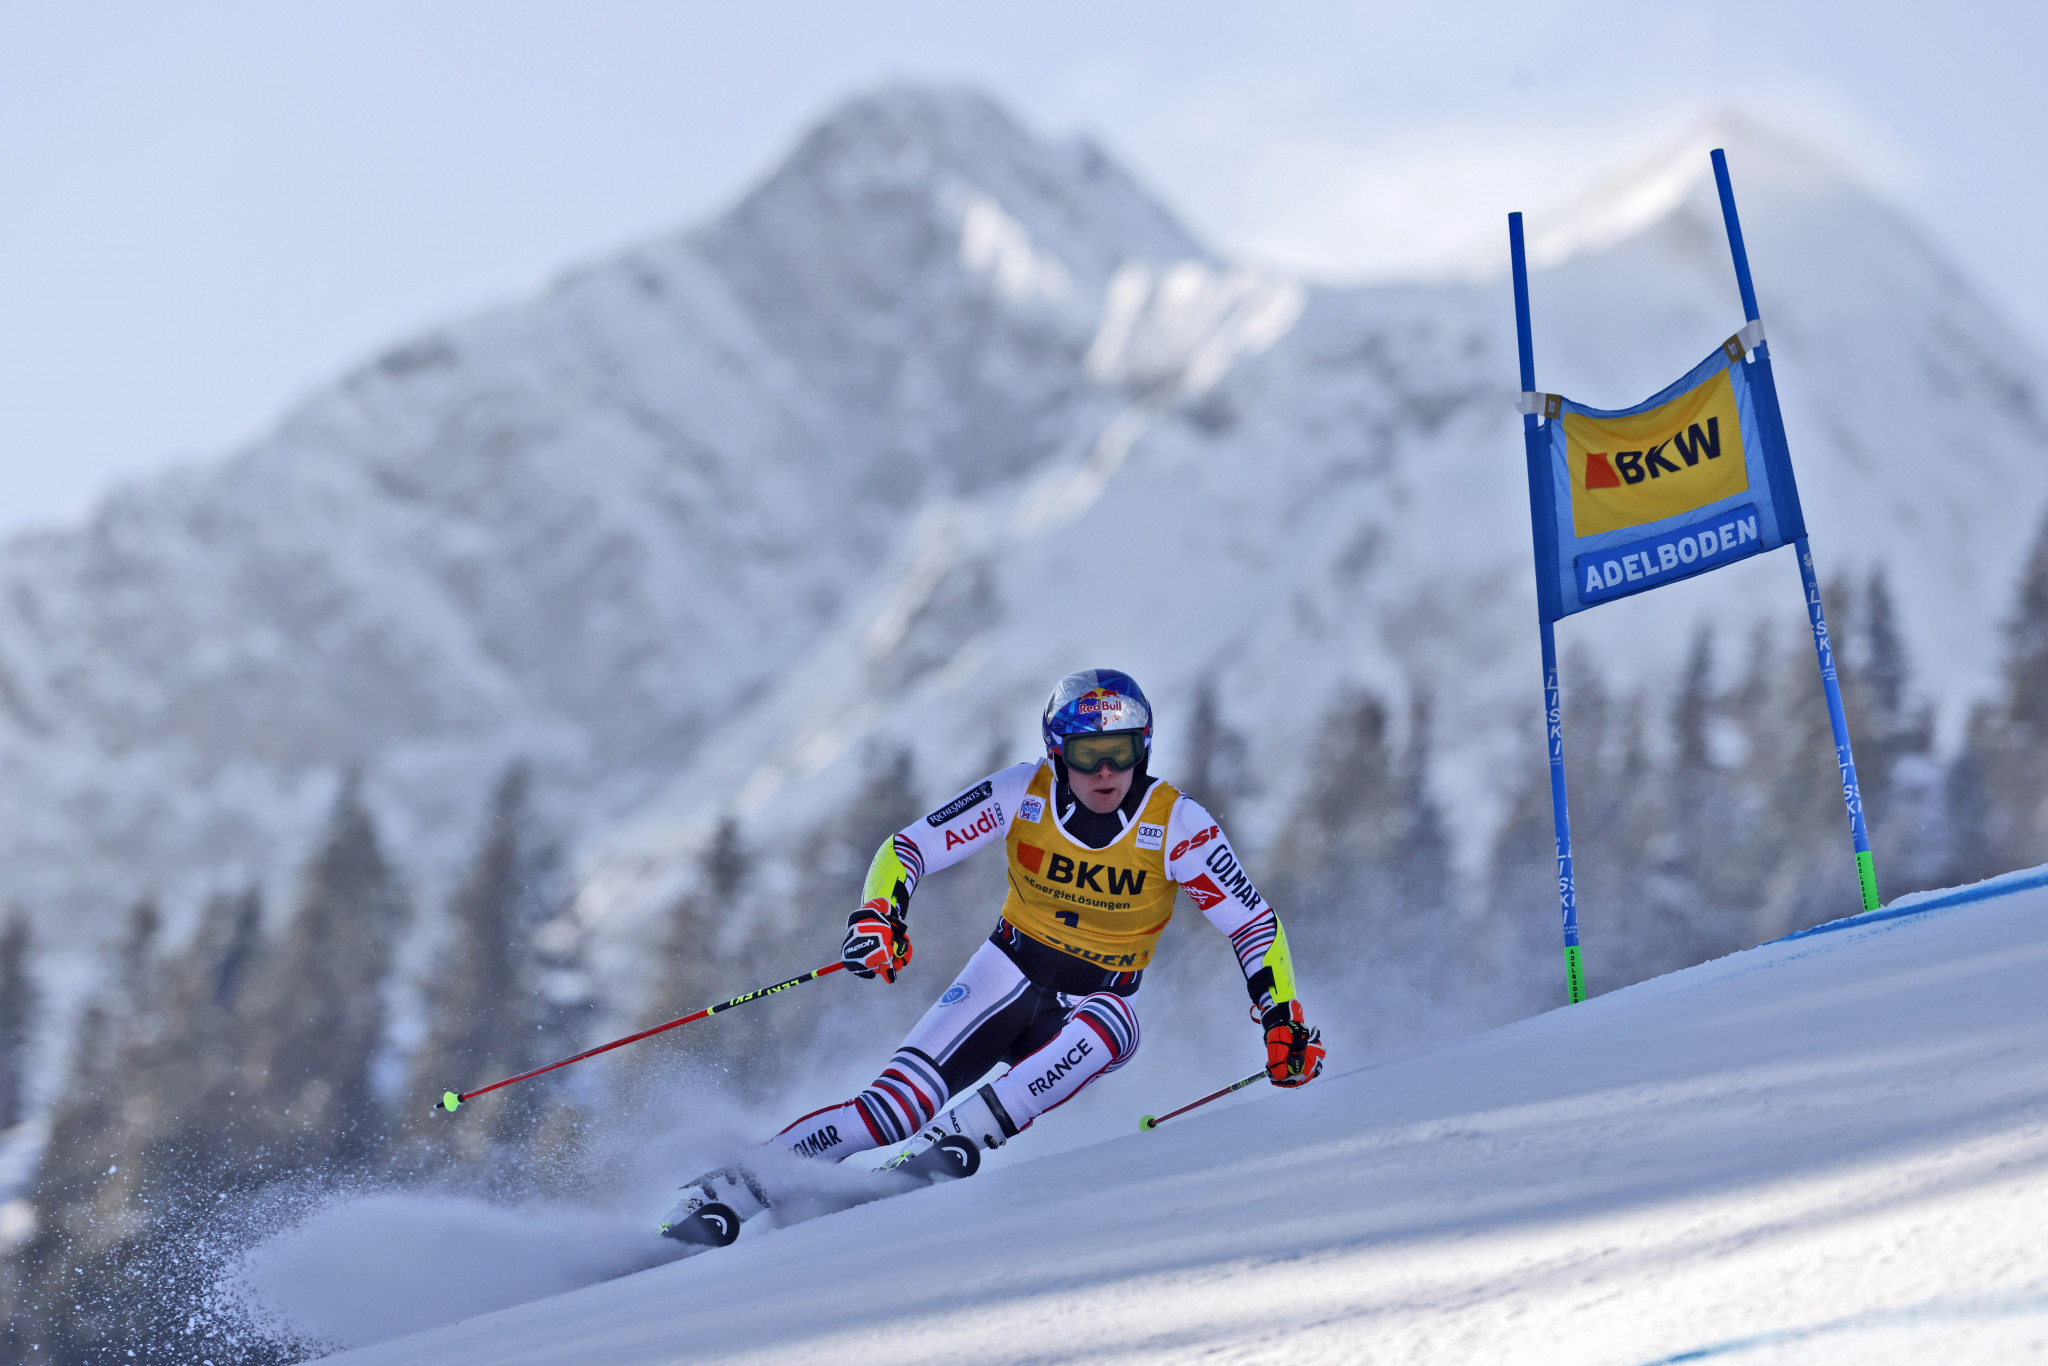 Pinturault dominates men's giant slalom competition in Adelboden